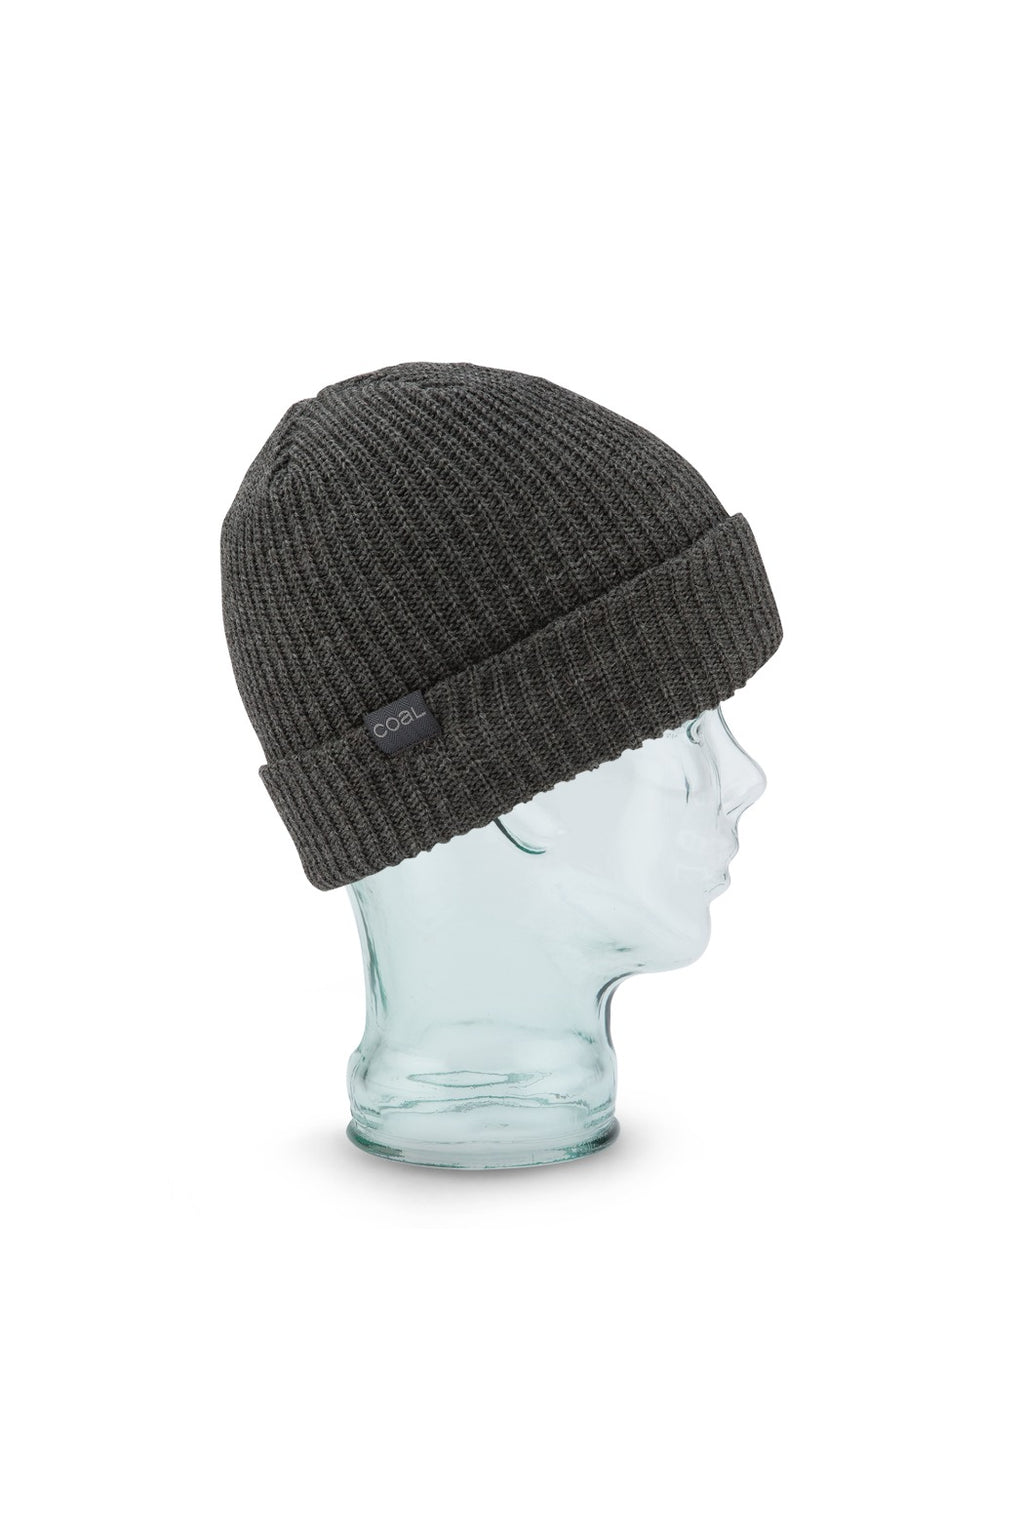 Coal Stanley Beanie in Charcoal